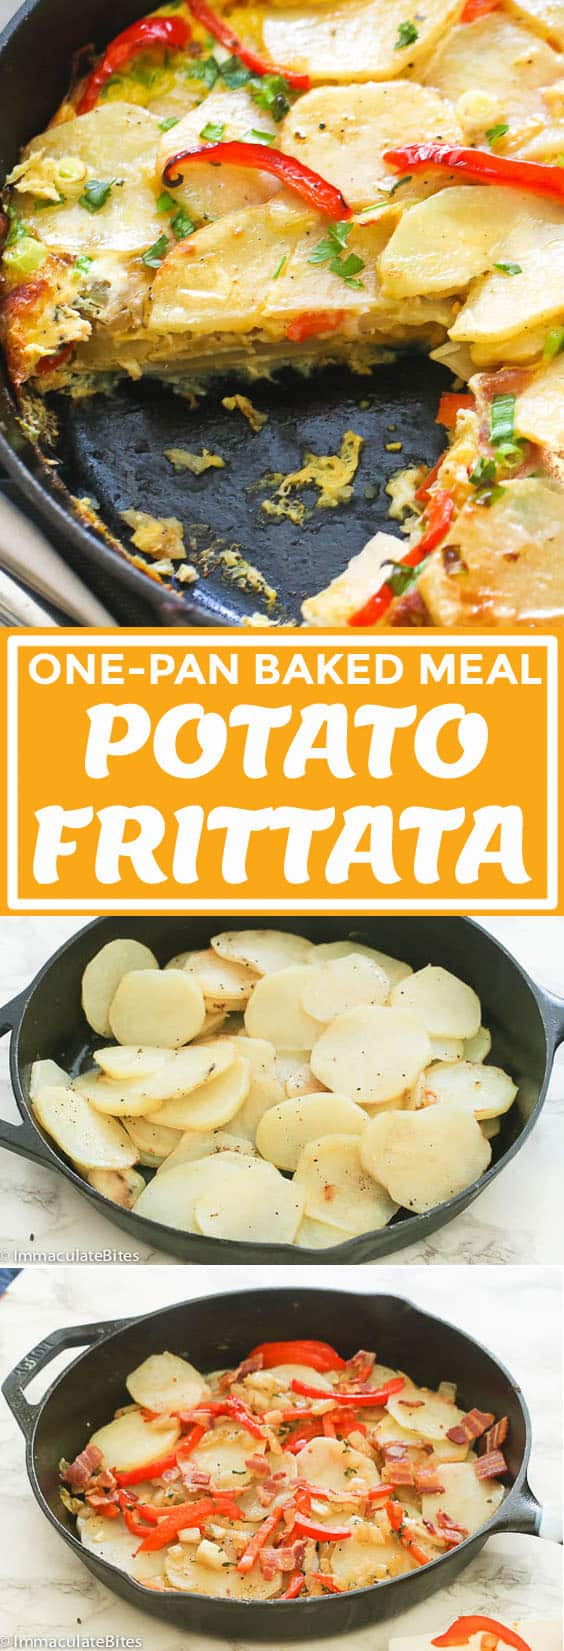 Potato Frittata